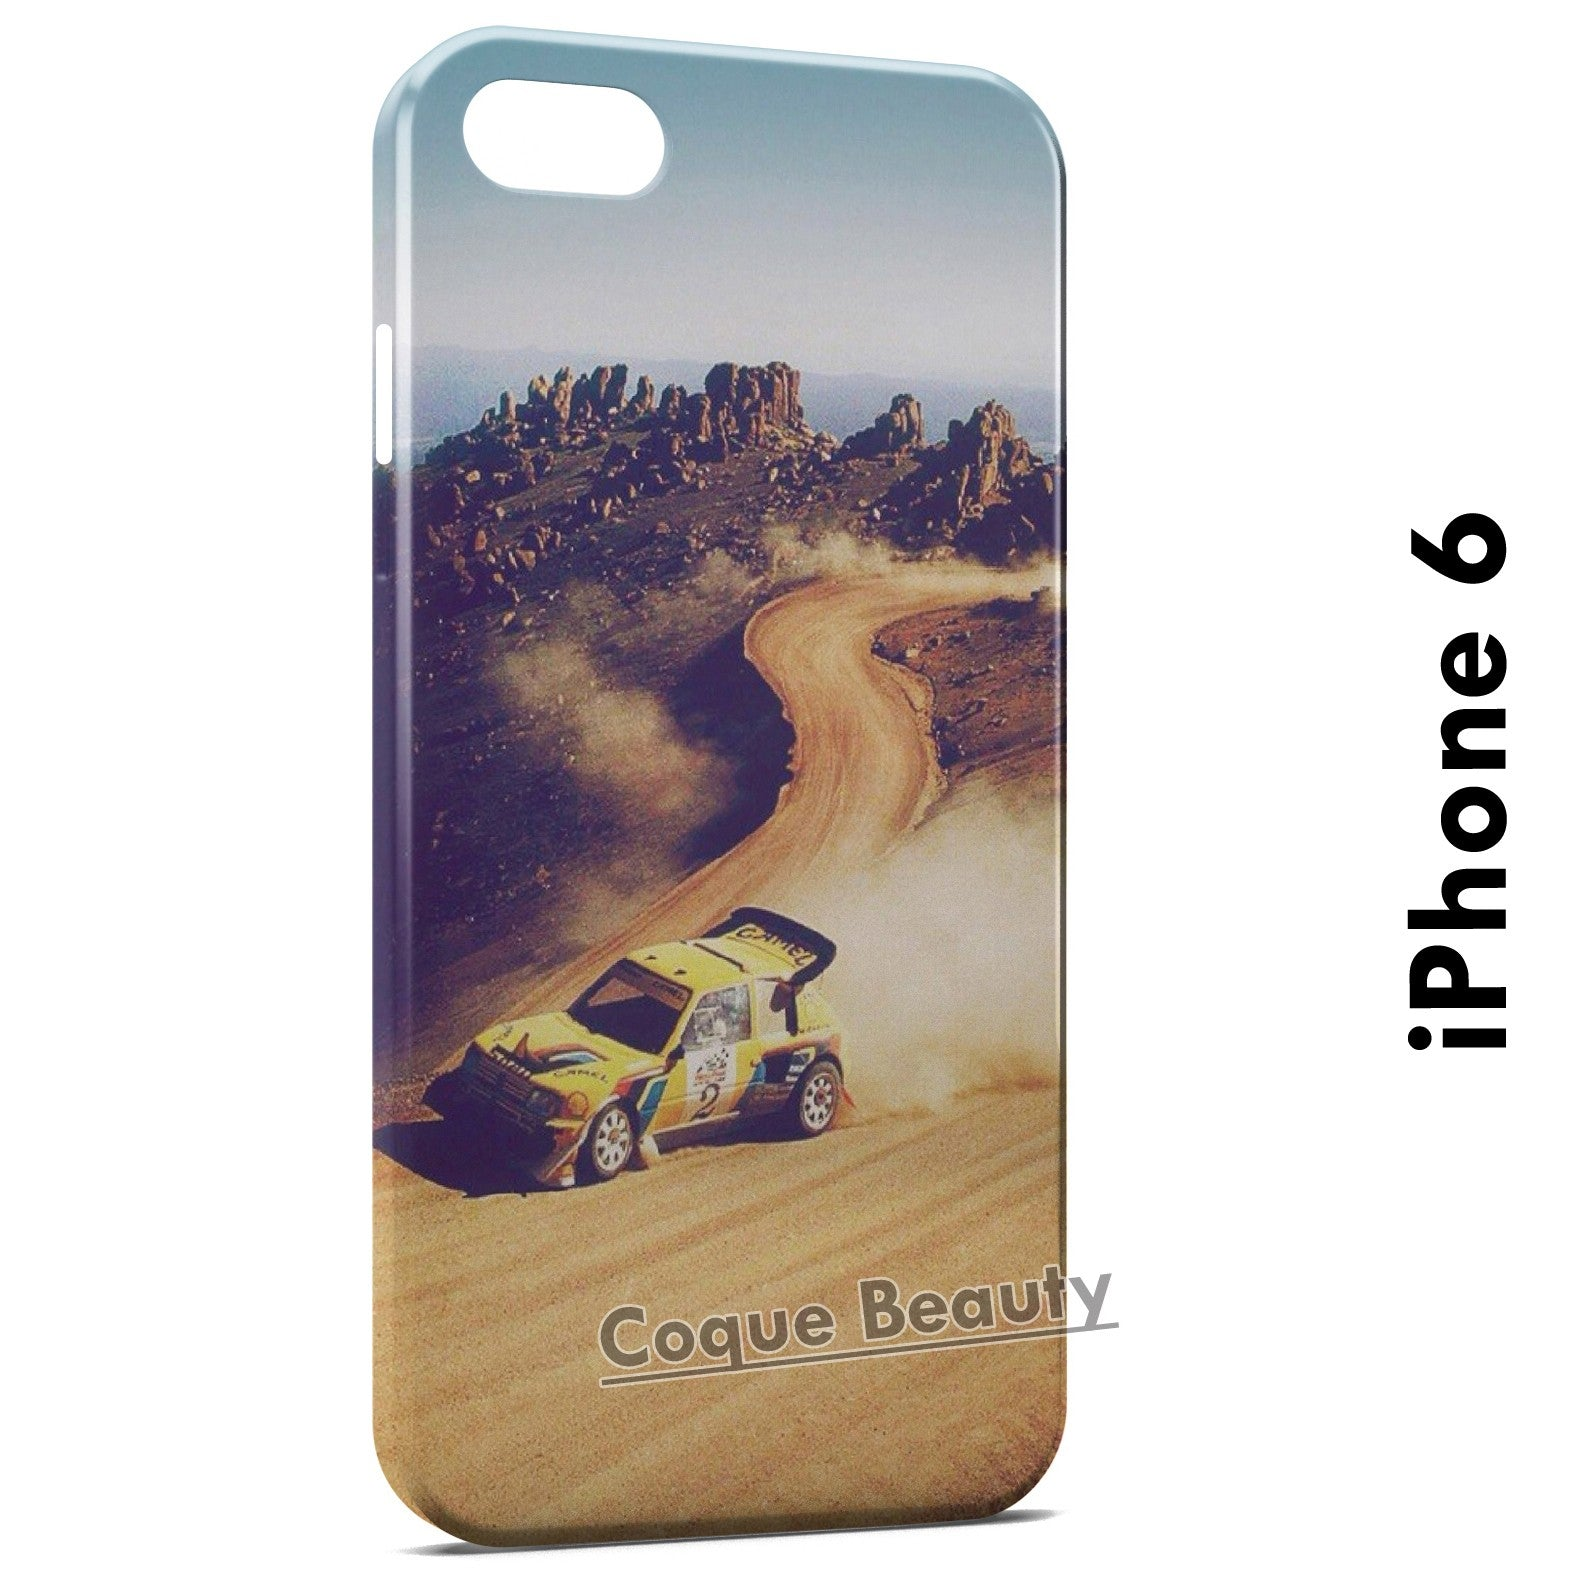 coque rallye iphone 6